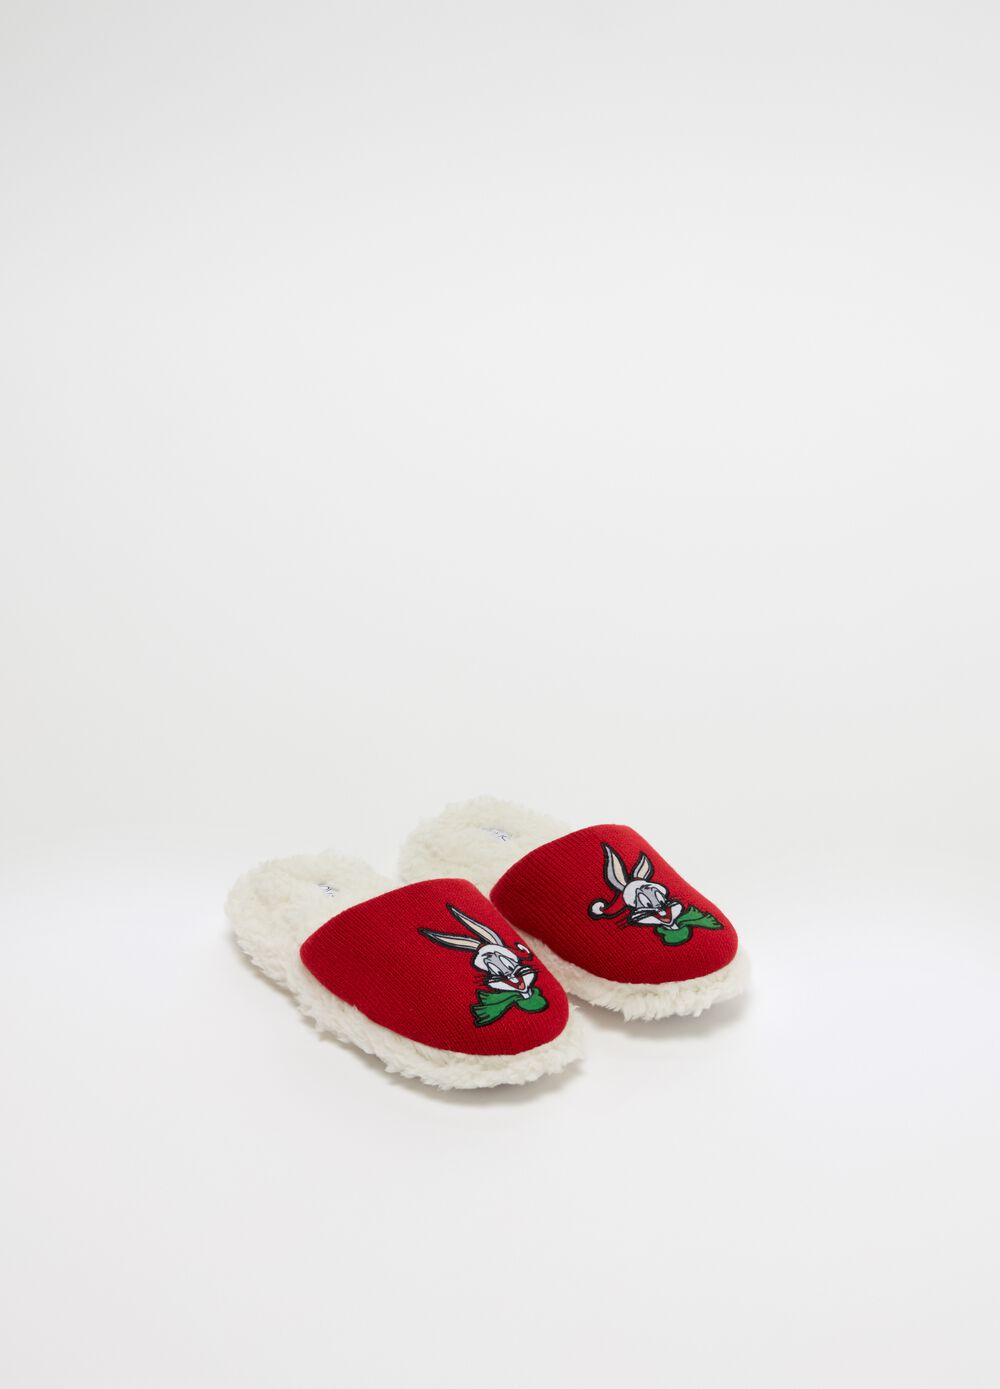 Slippers with Warner Bros embroidery